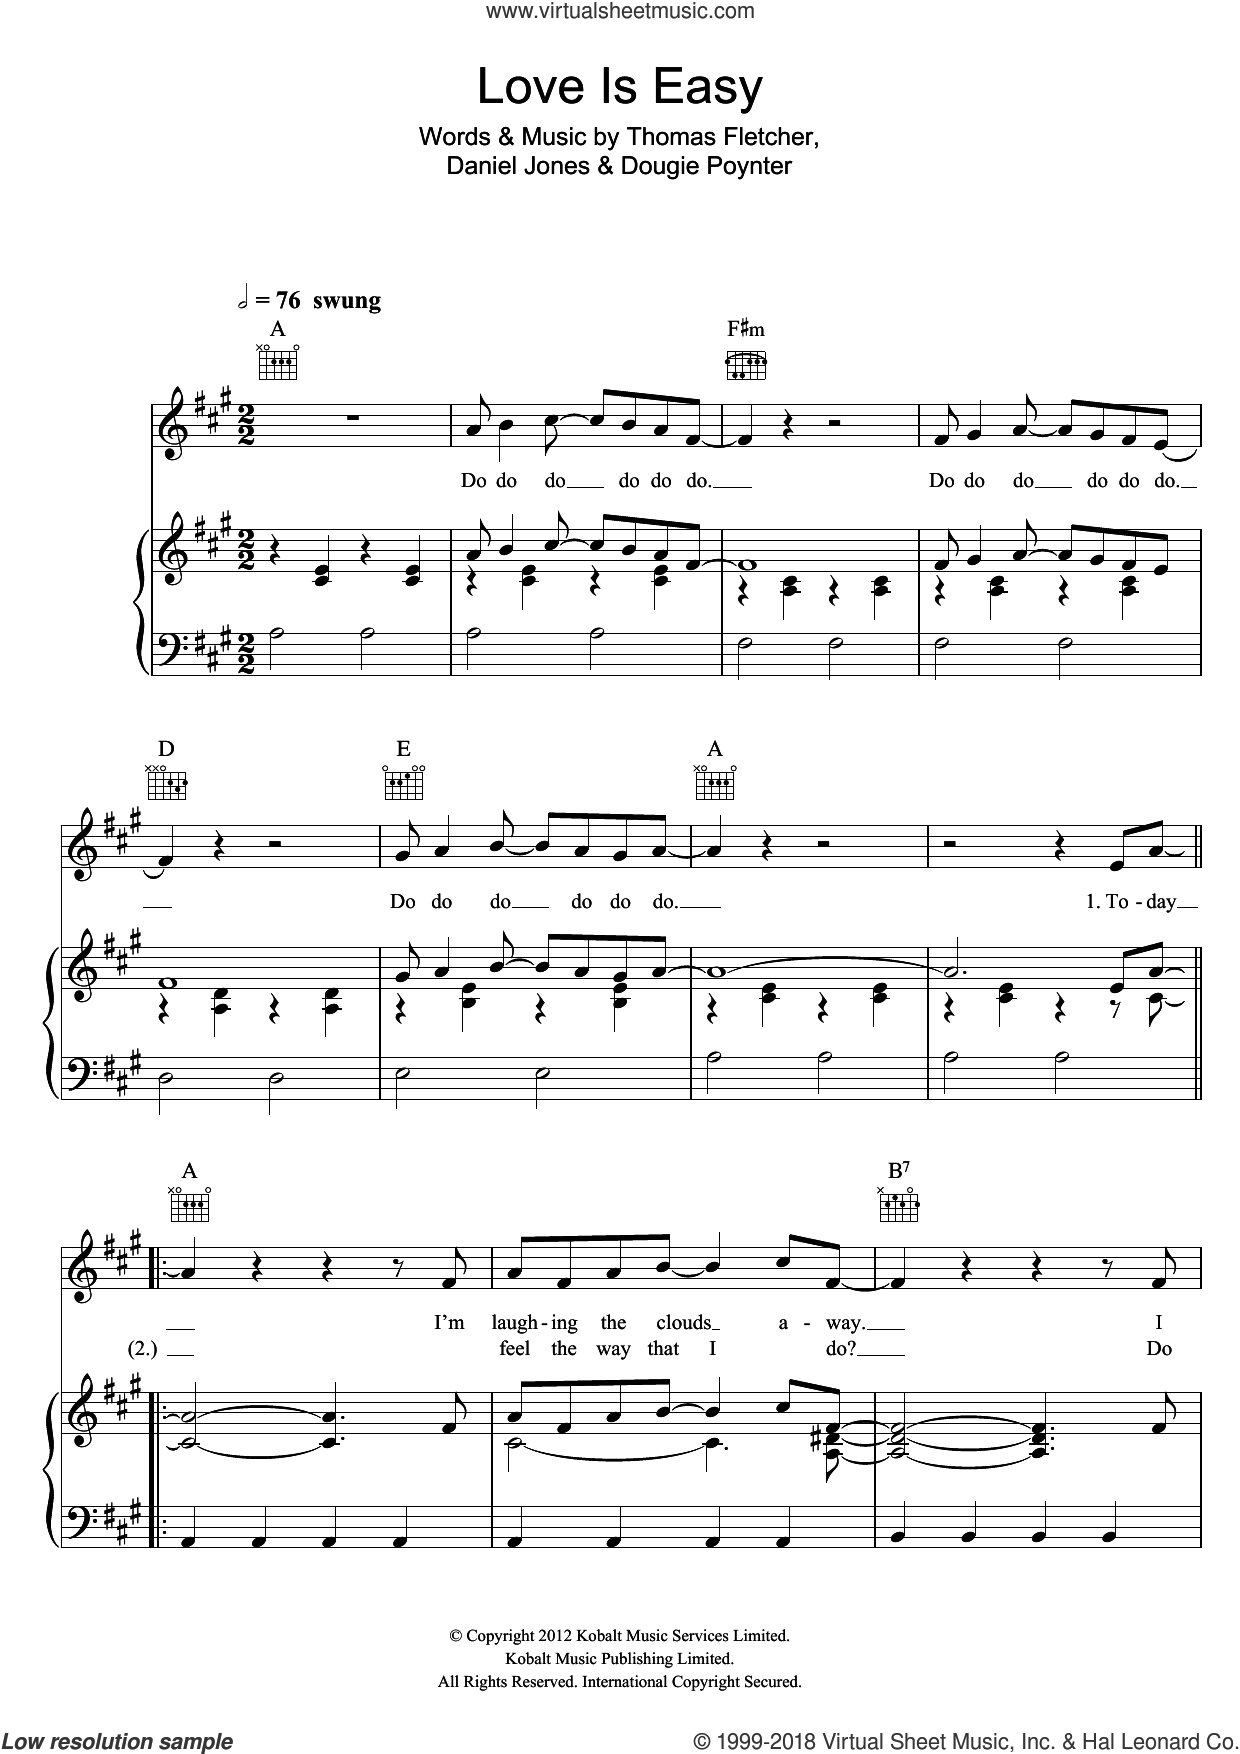 Love Is Easy sheet music for voice, piano or guitar by Thomas Fletcher, Danny Jones and Dougie Poynter. Score Image Preview.